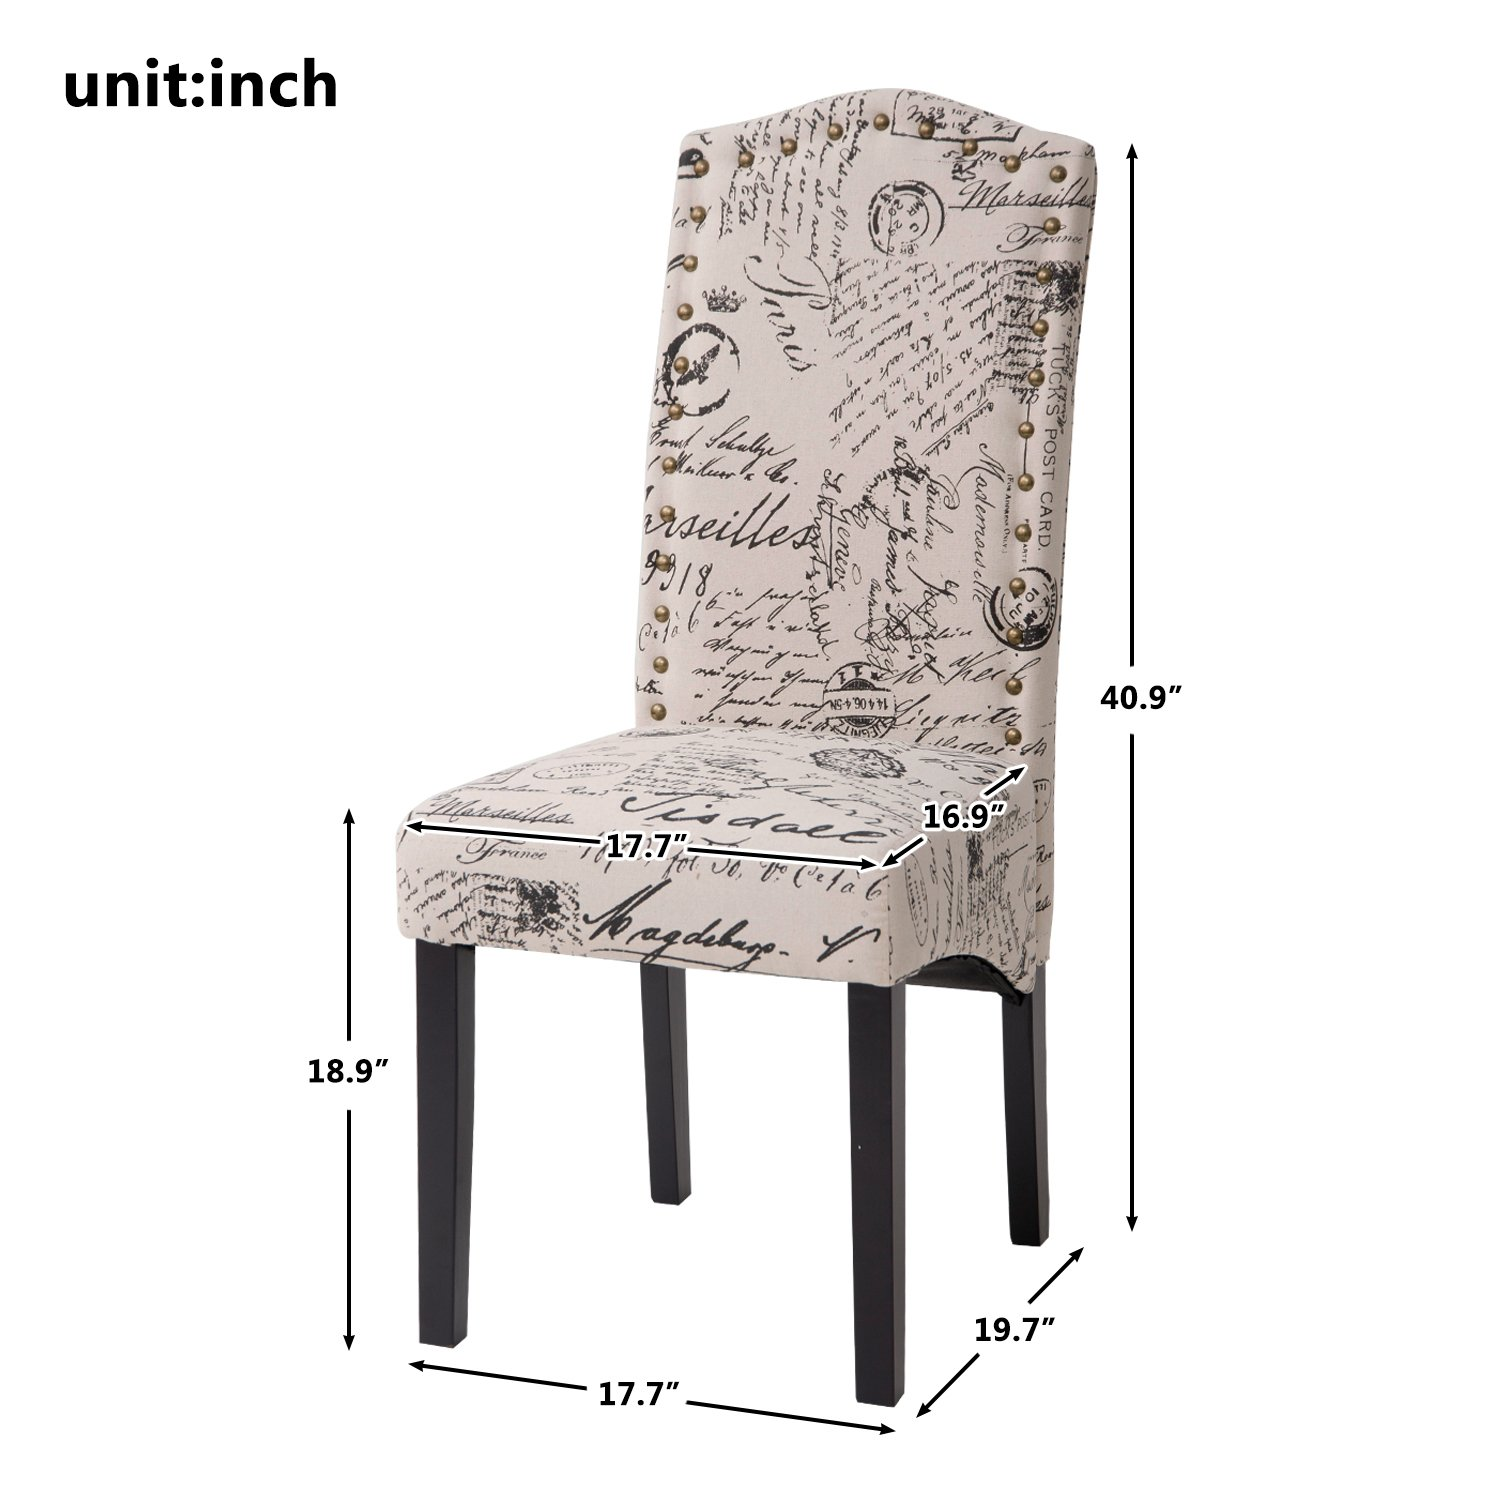 Merax PP036312AAA Dining Script Fabric Accent Chair with Solid Wood Legs, Set of 2 by Merax (Image #7)